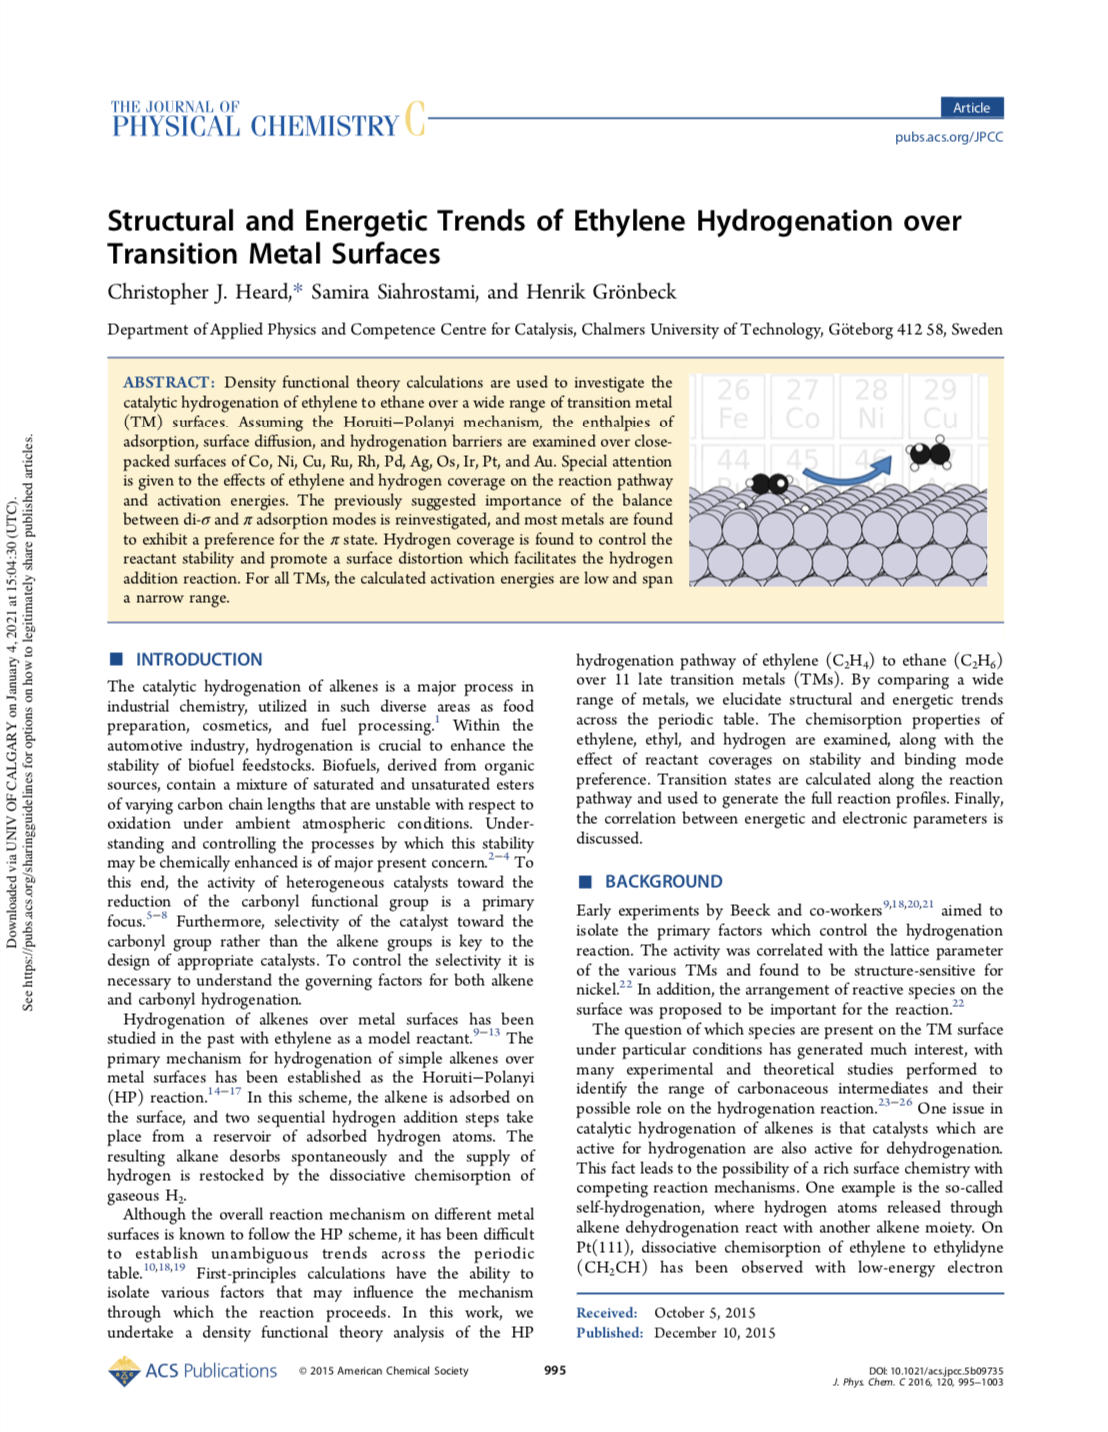 Structural and Energetic Trends of Ethylene Hydrogenation over Transition Metal Surfaces